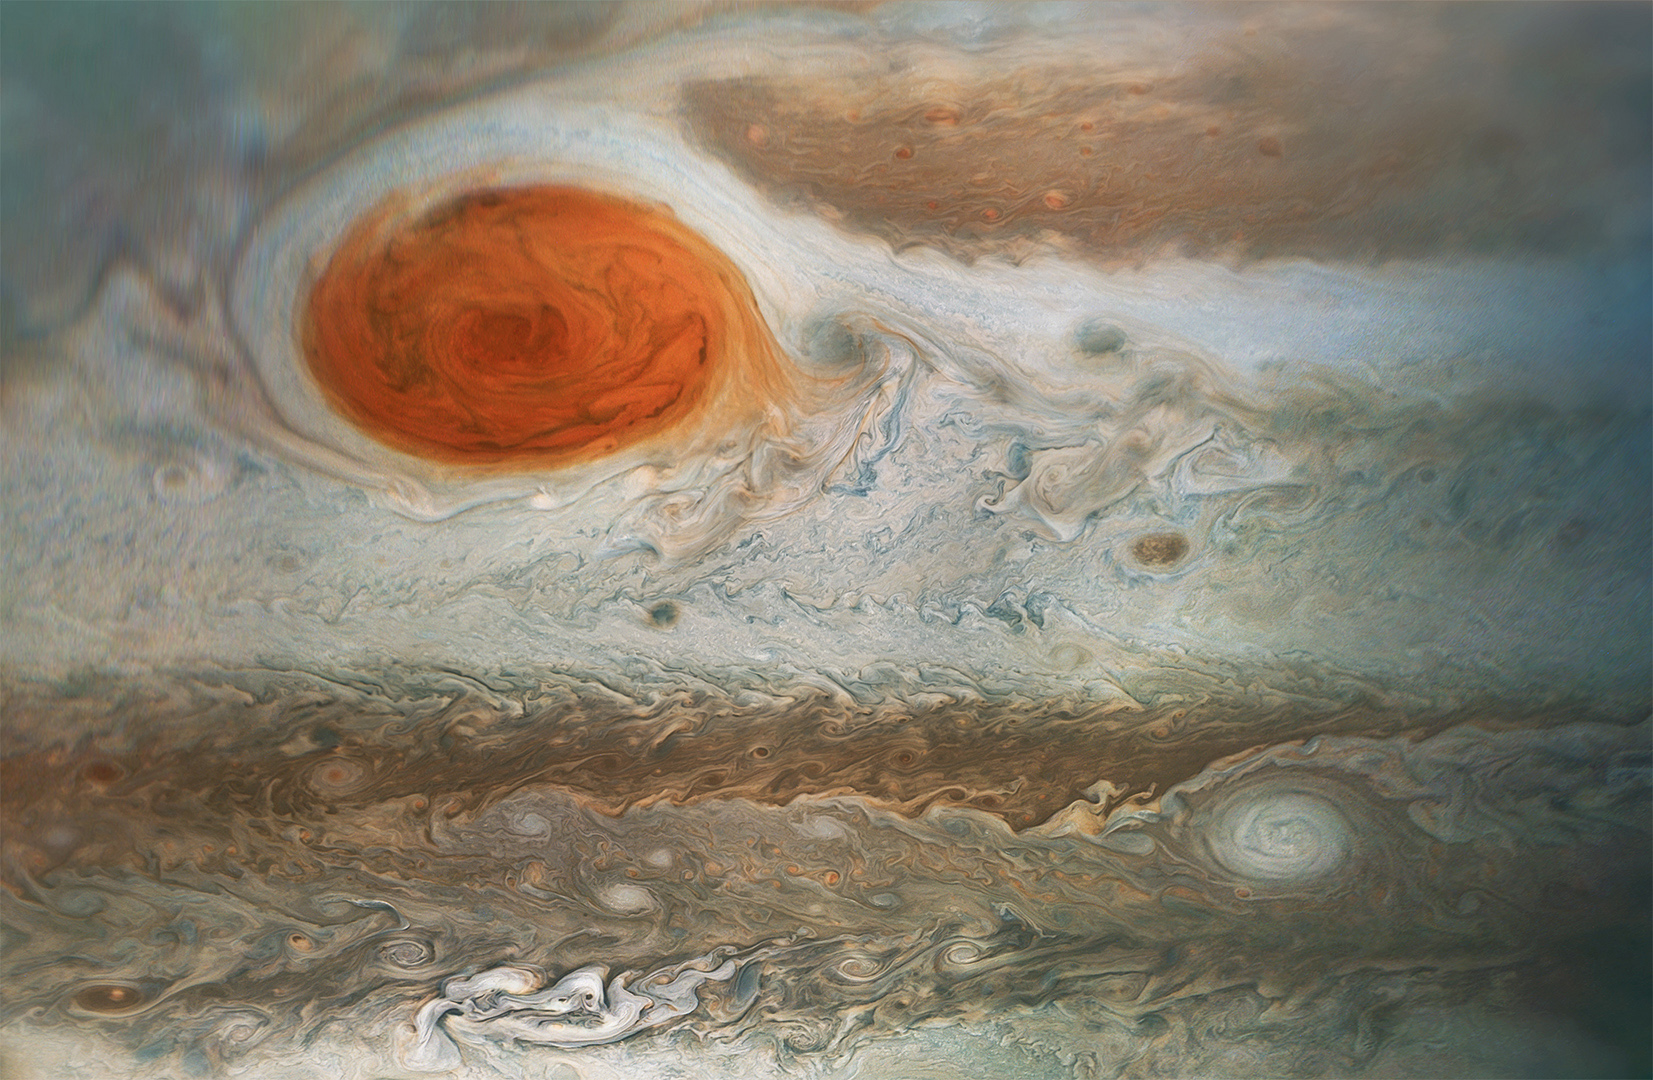 Jupiter's Great Red Spot, Spotted Pia21985